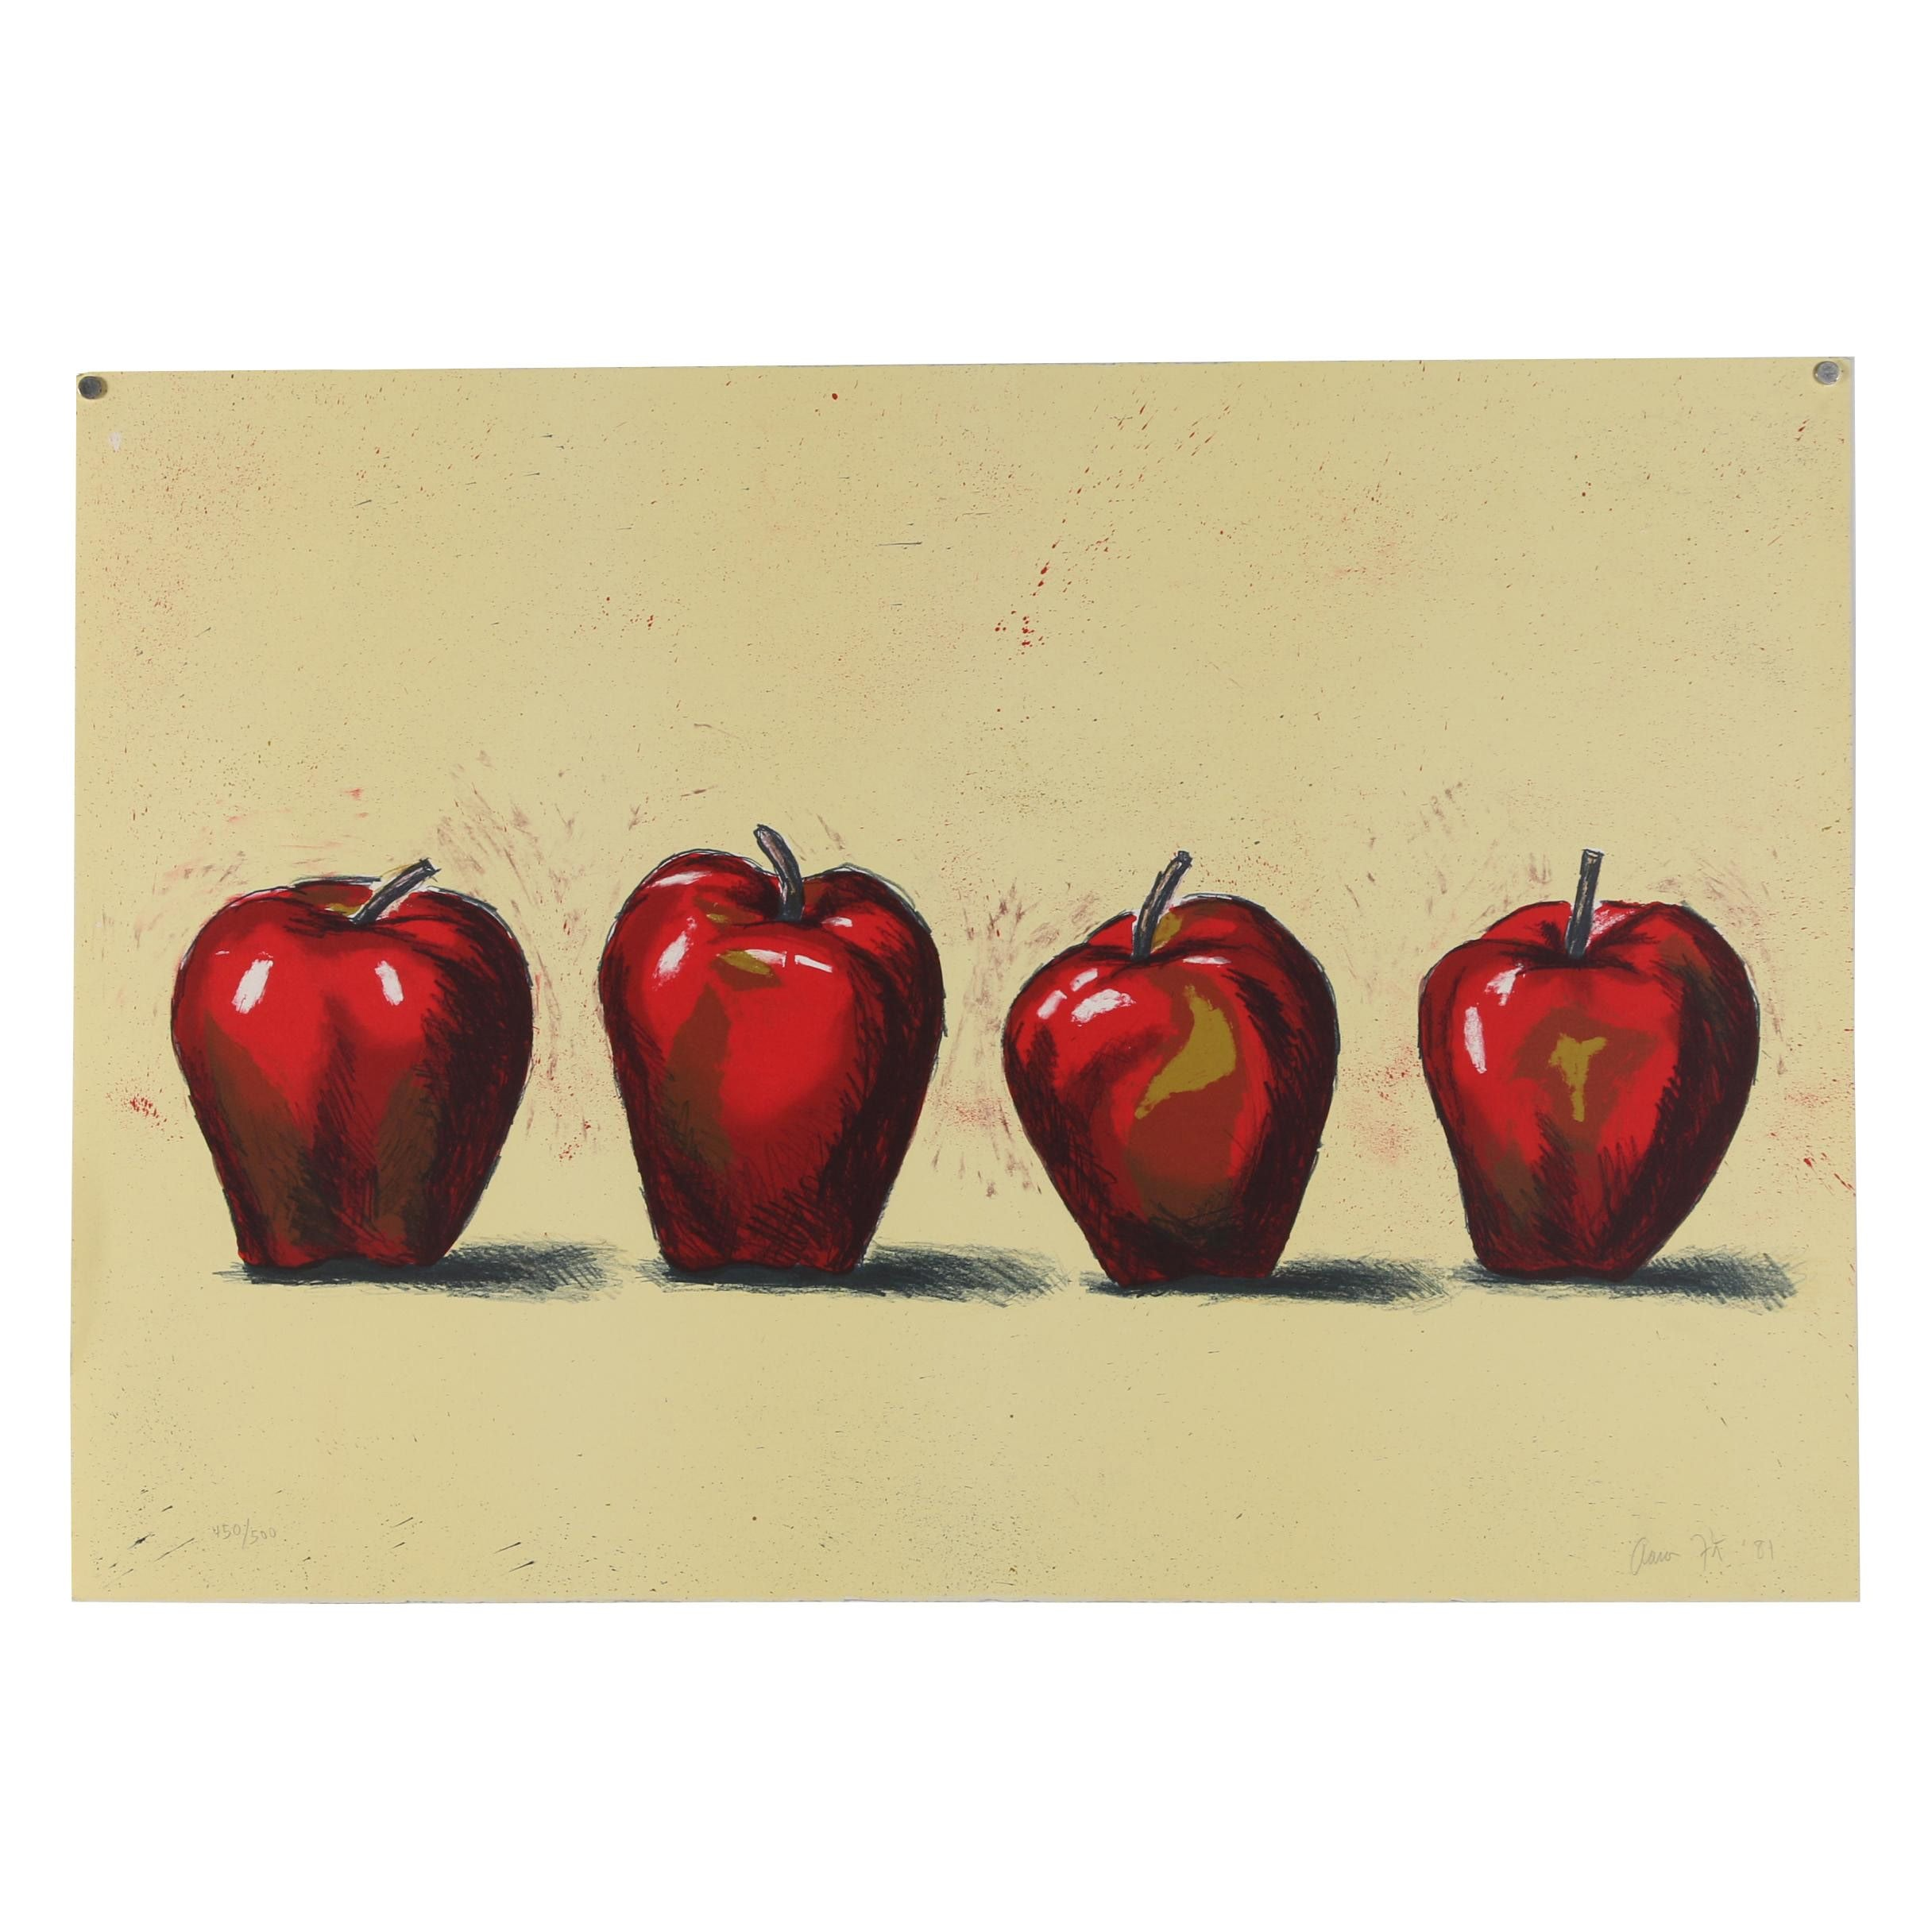 Aaron Fink 1981 Color Lithograph of Four Apples